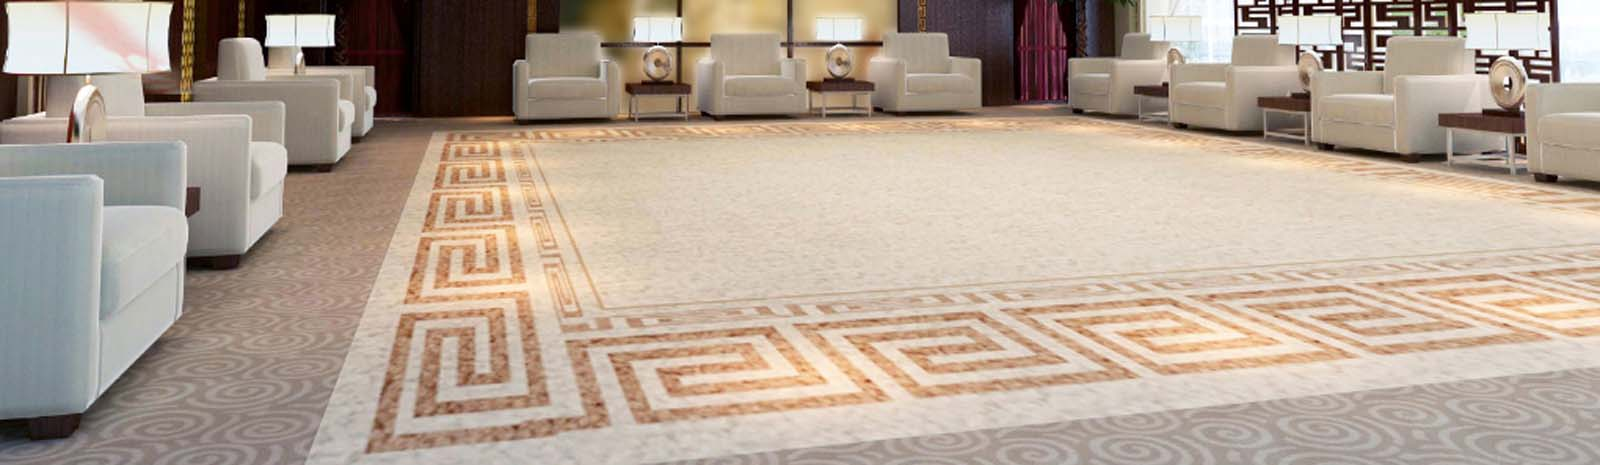 Welcome to Heritage Floor Coverings - North Royalton,